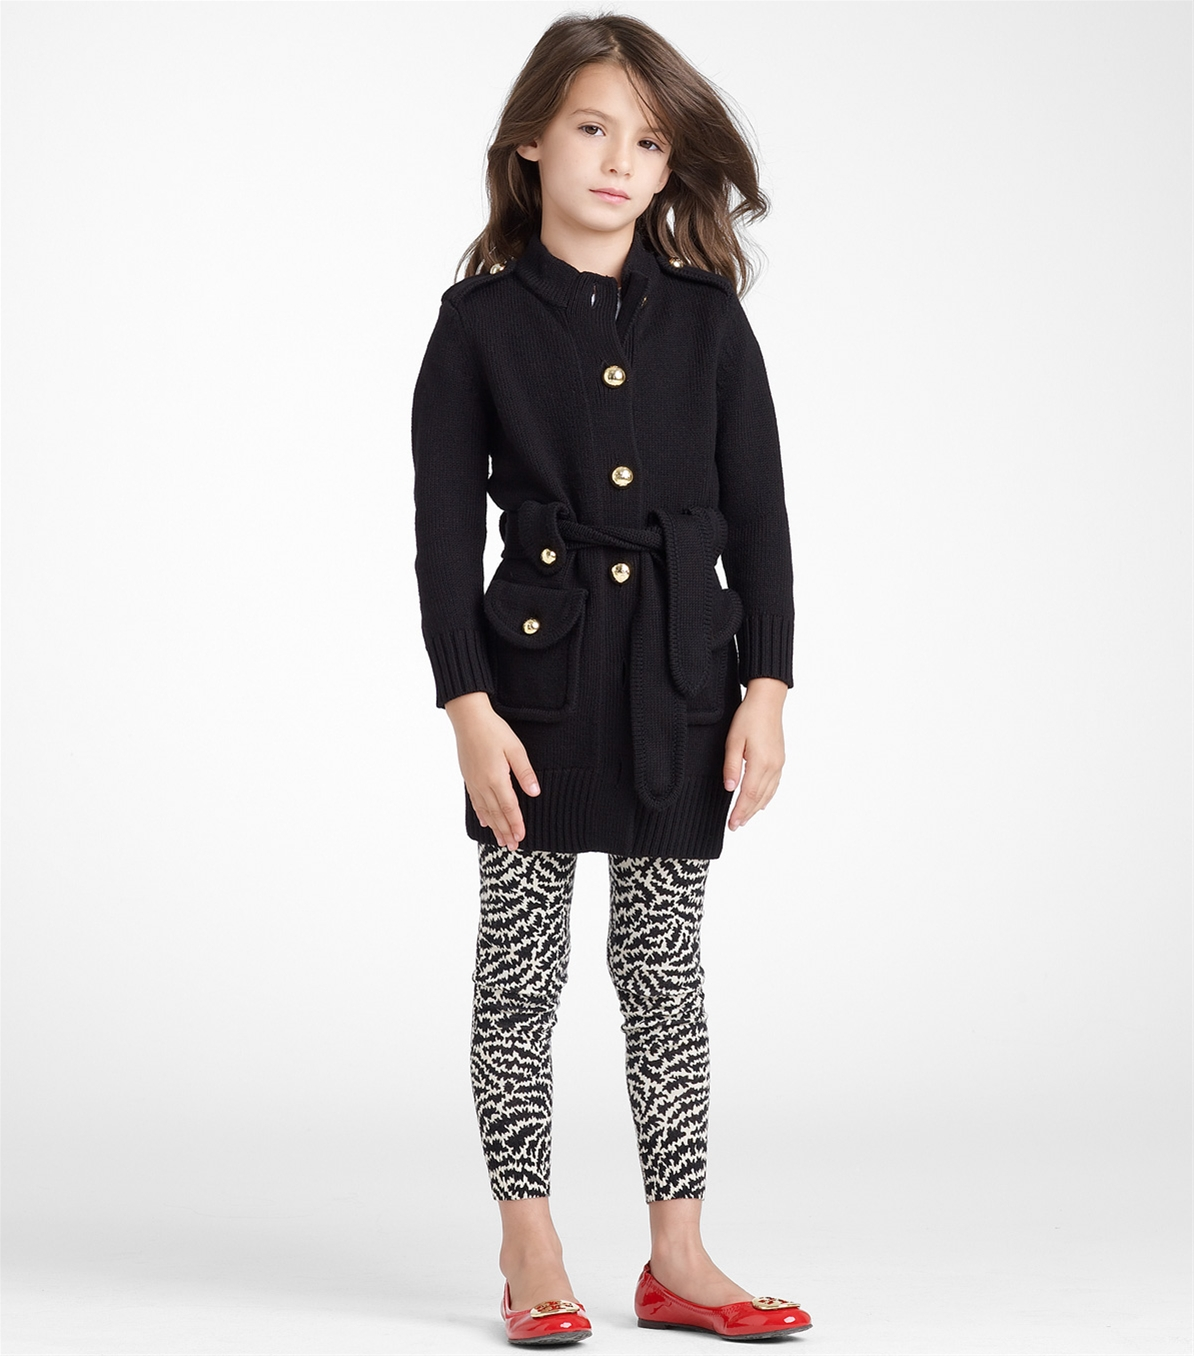 Fashion super cute tory burch kids clothing